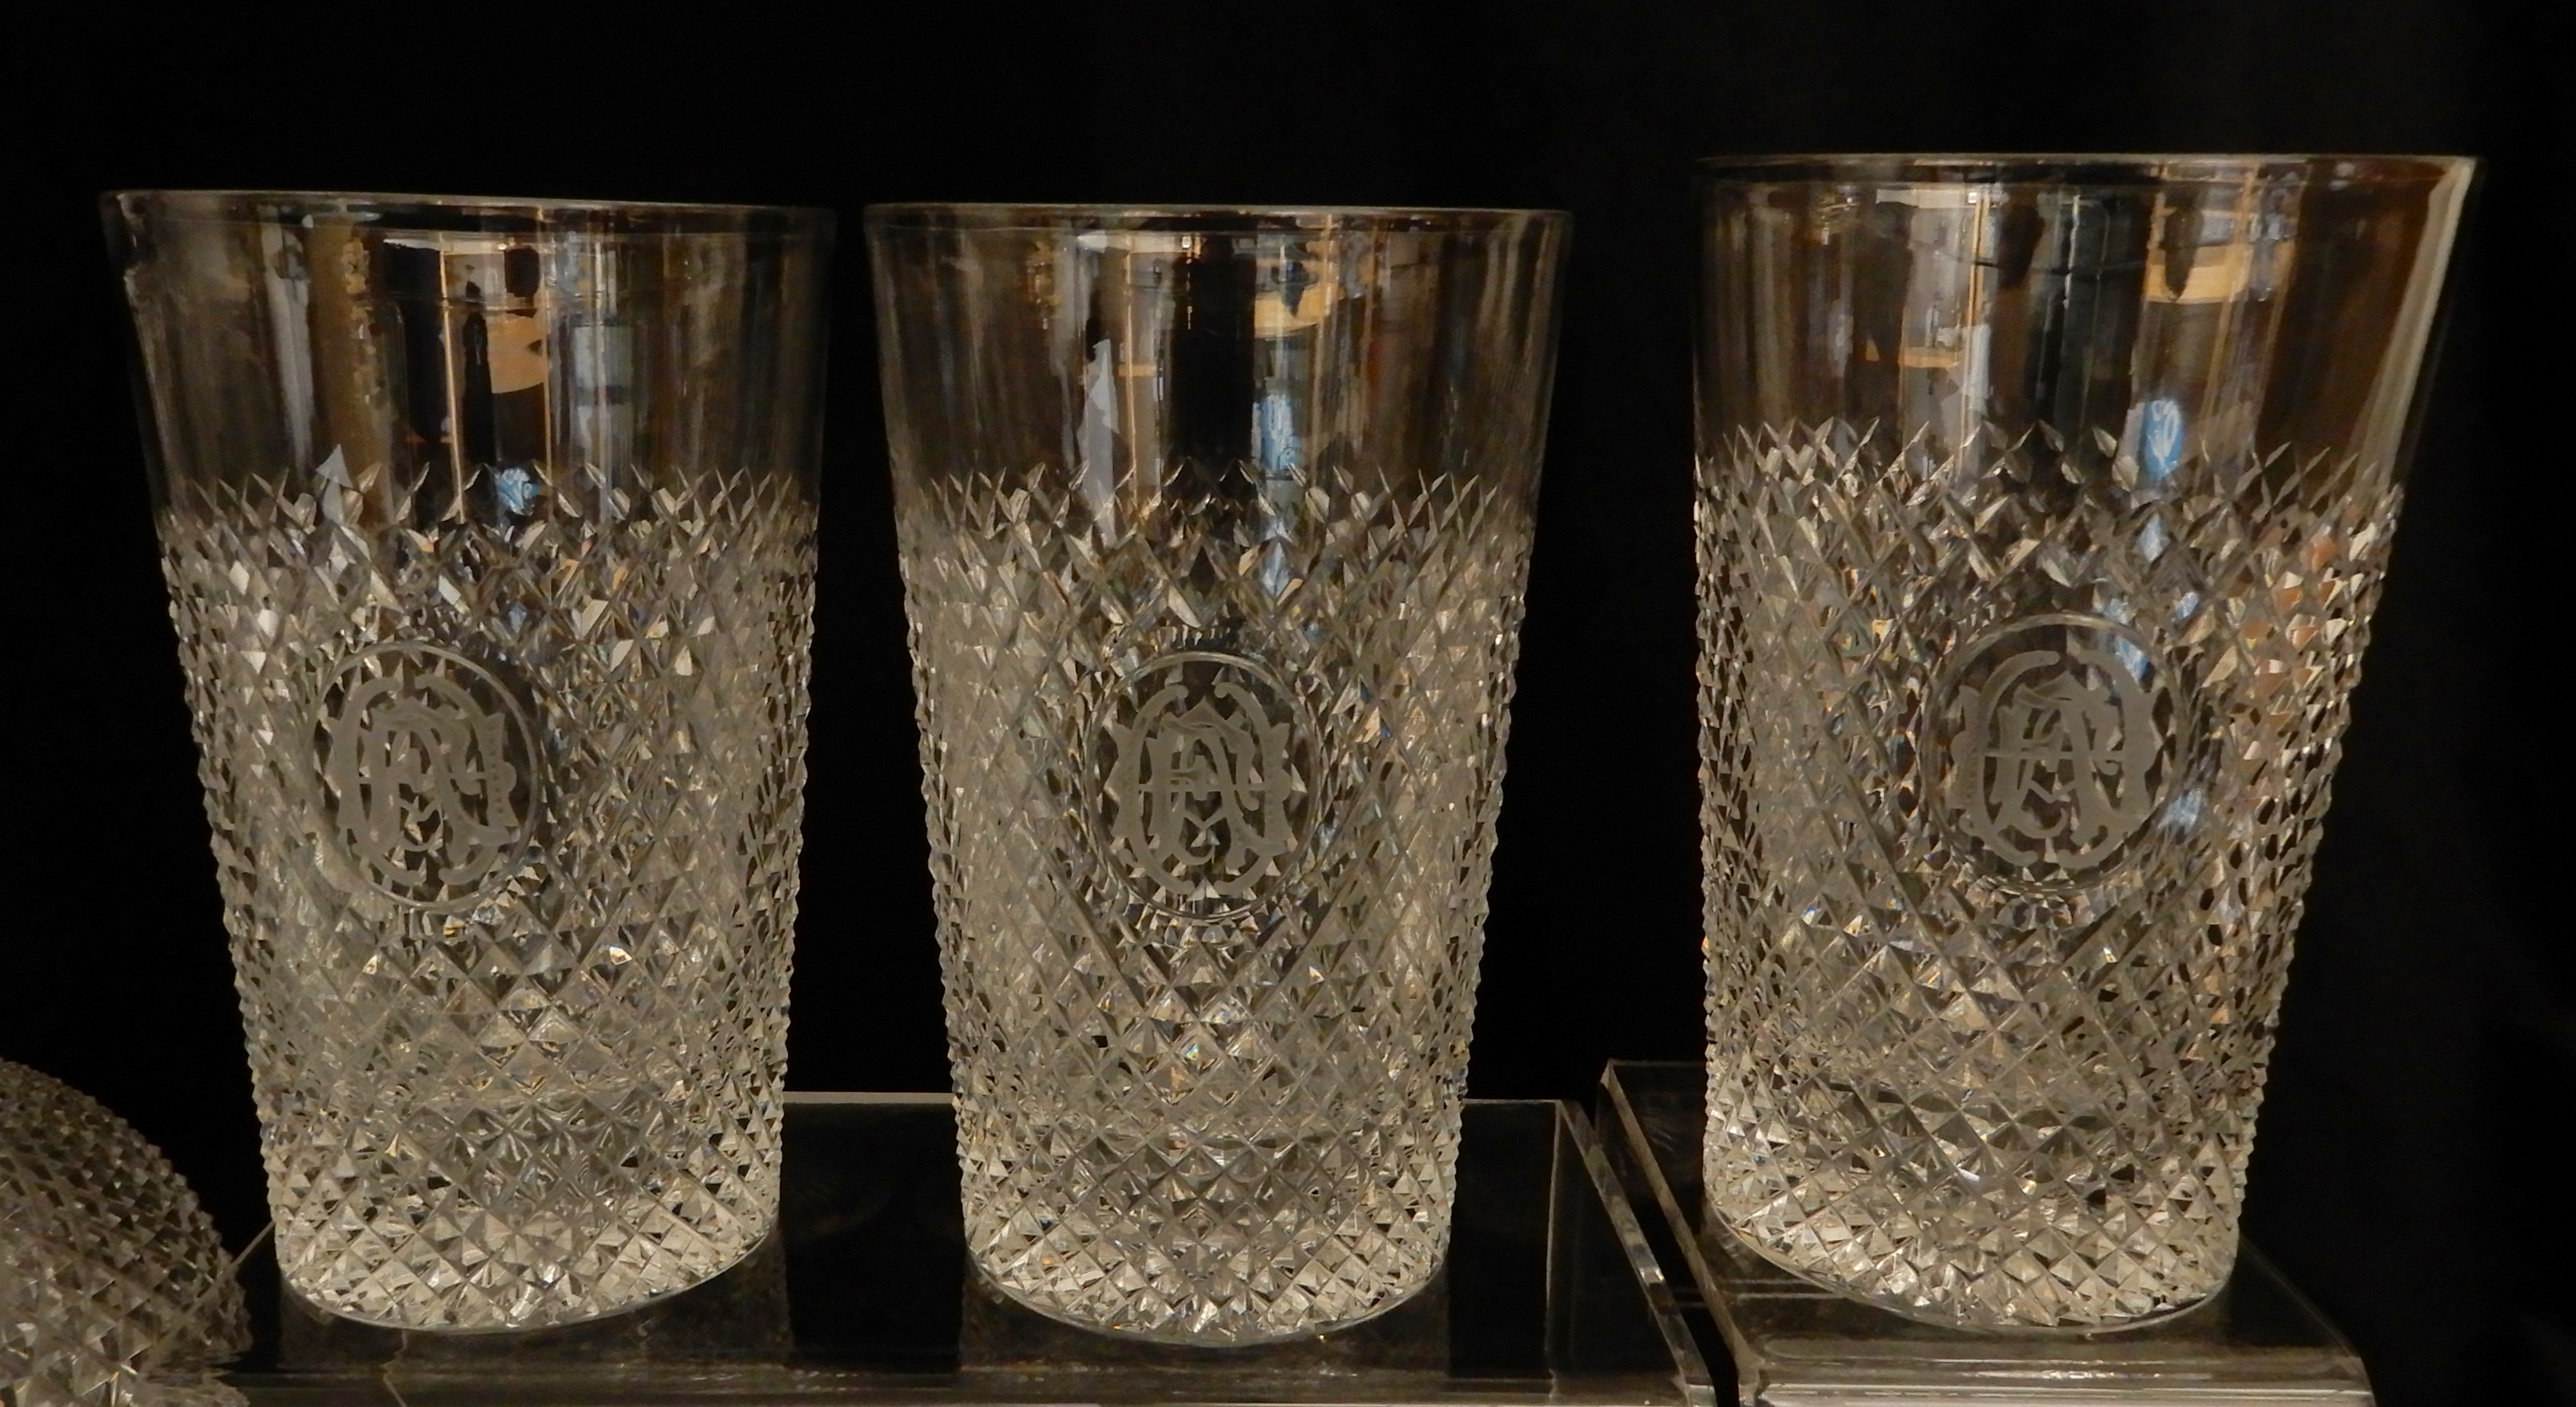 Lot 476 - A SUITE OF LATE 19TH CENTURY DIAMOND CUT CRYSTAL comprising six large tumblers, 14.5cm high, fifteen